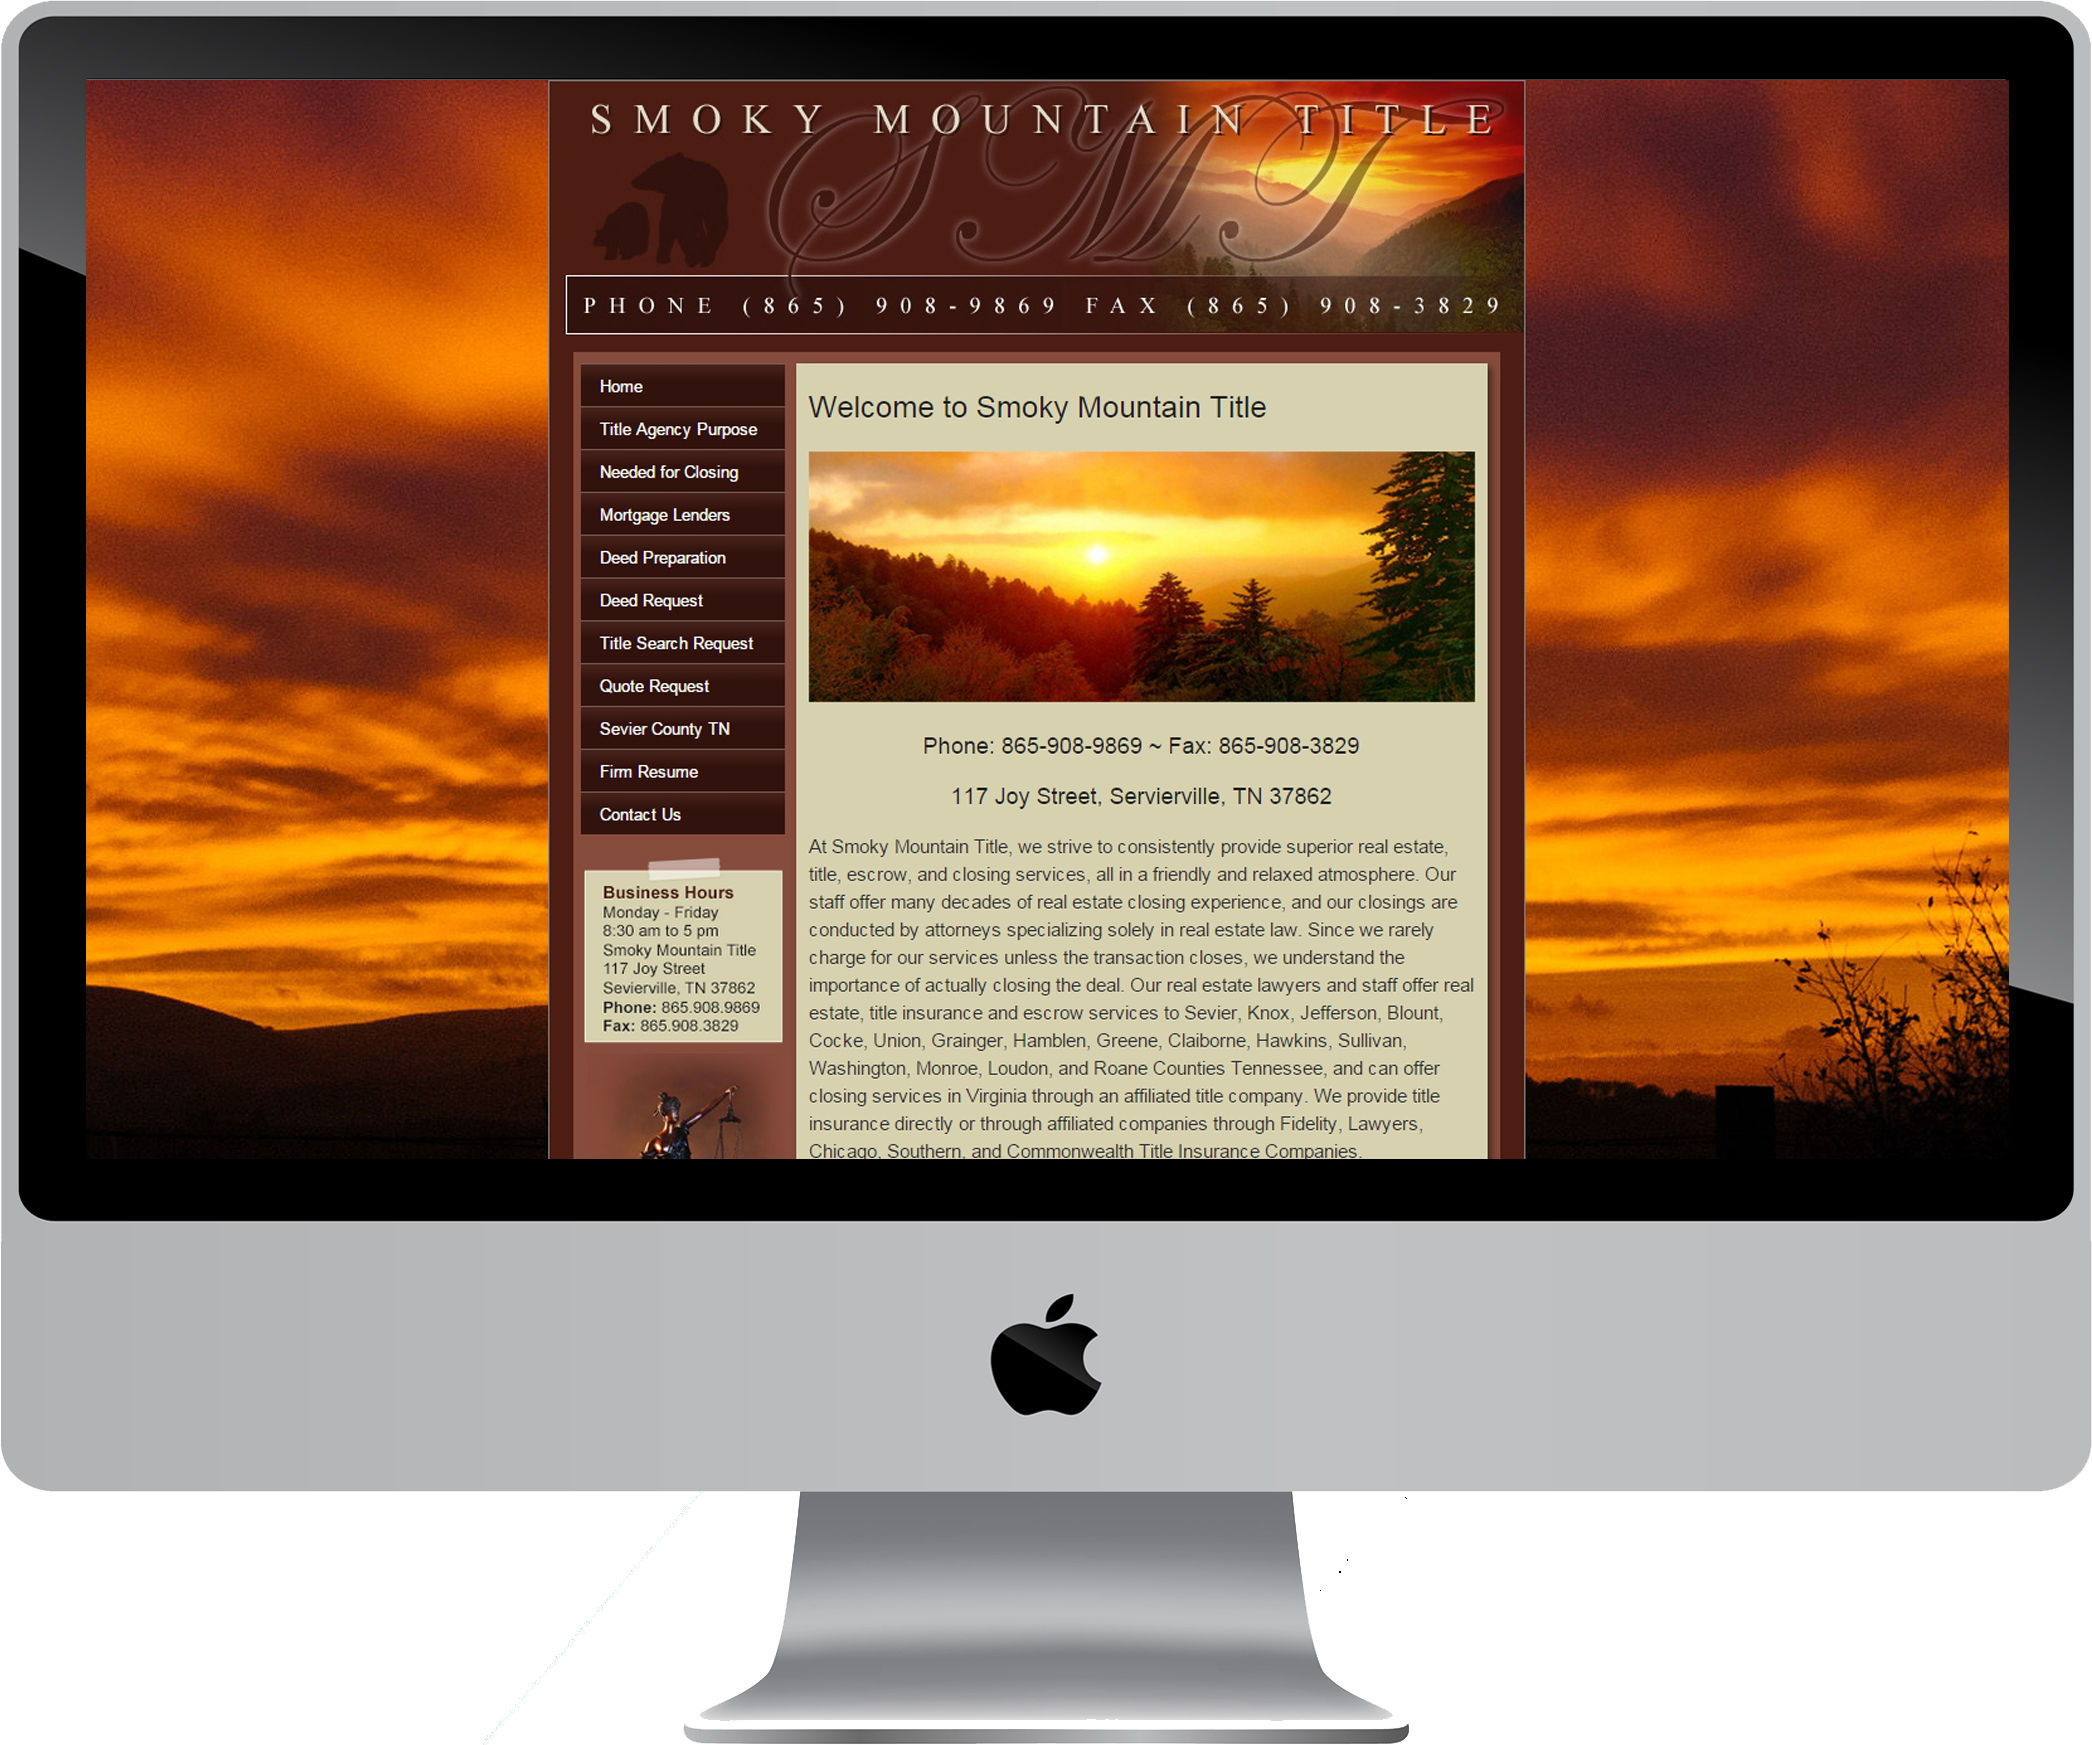 Smoky Mountain Title on a Desktop